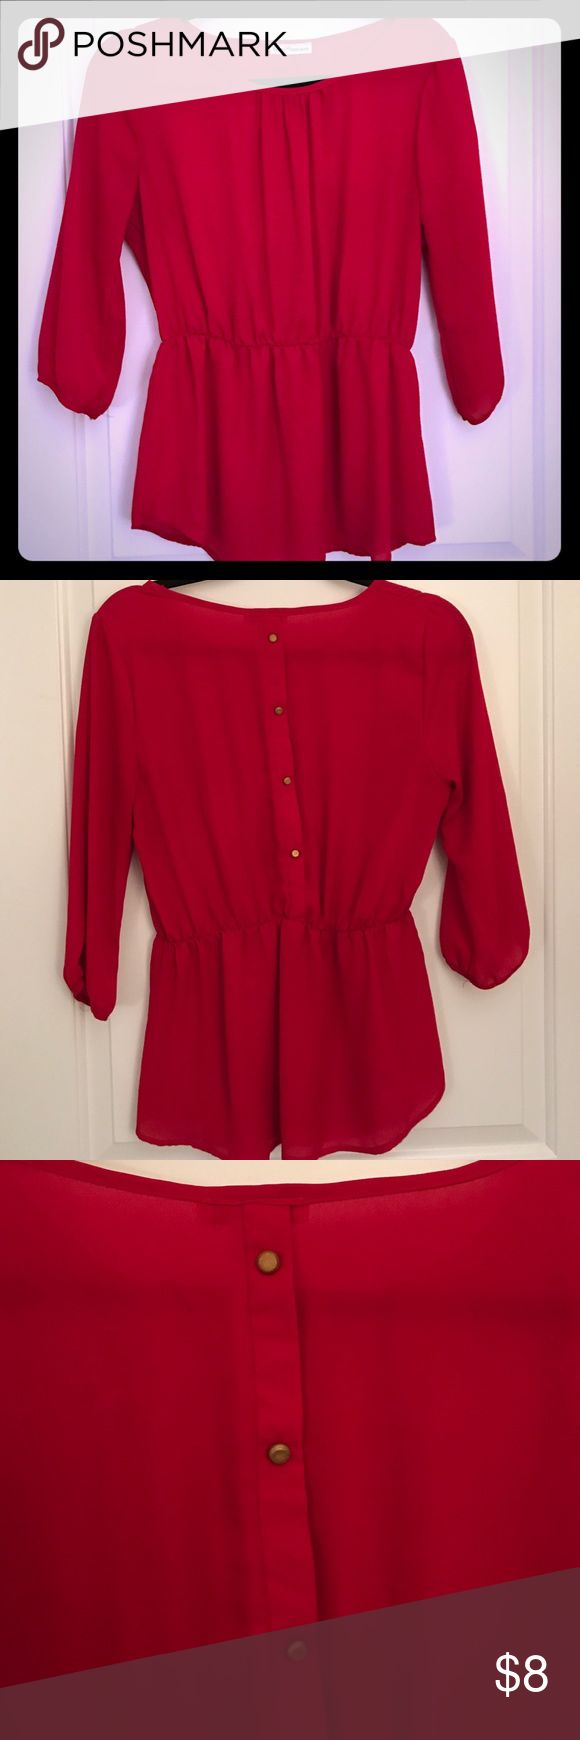 Red, Back Button Peplum Blouse, Medium Great shirt, very flattering. Peplum style that comes in at the waist. Gold buttons down the back. 3/4 sleeves. Dainty Hooligan Tops Blouses